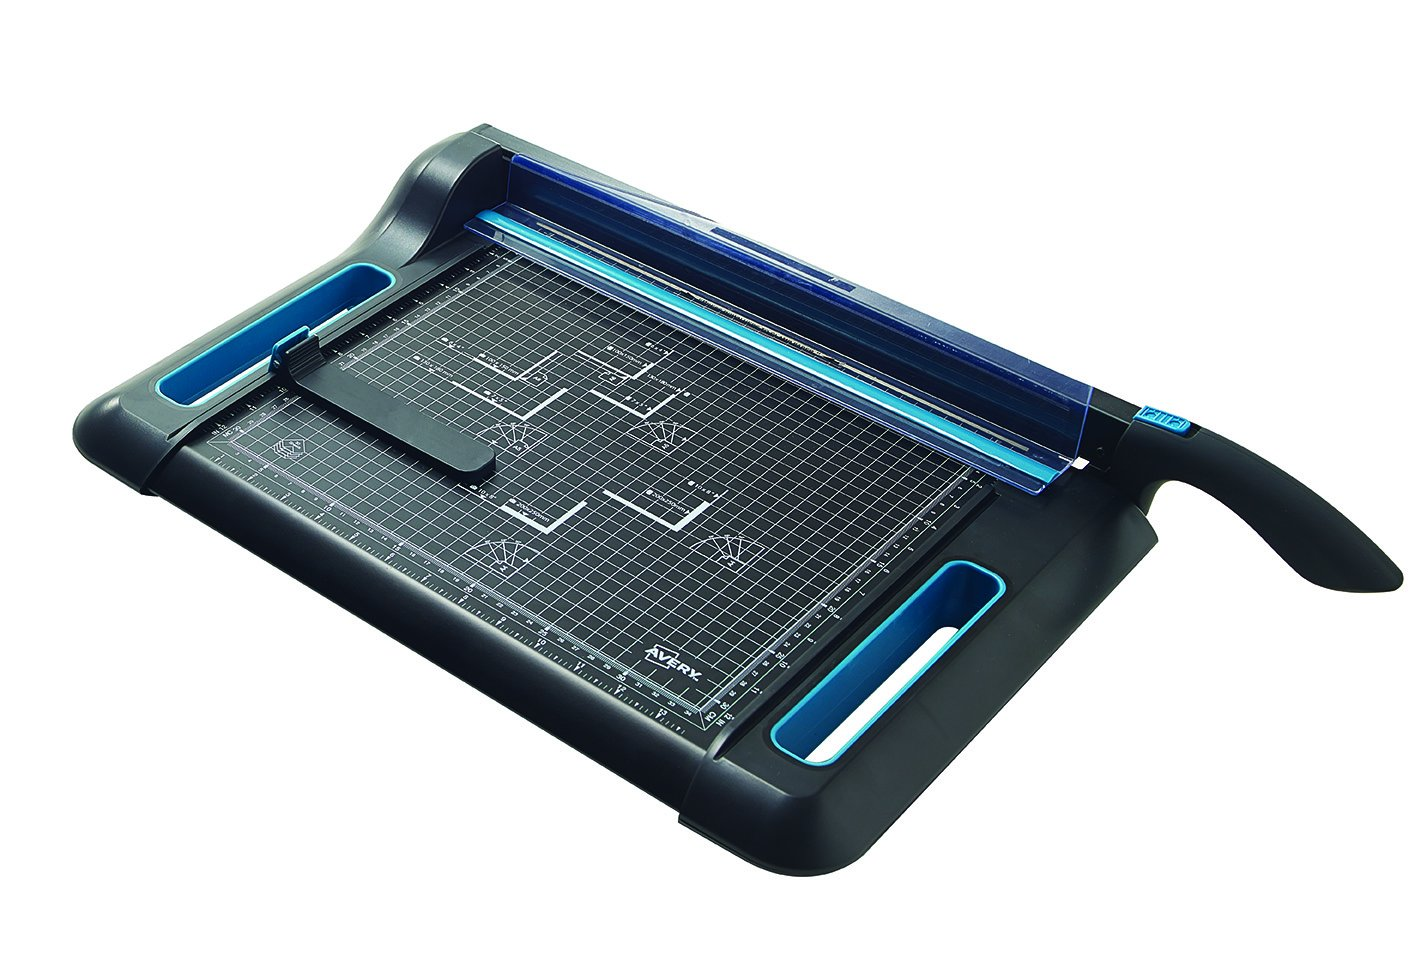 Avery A4 PG360 Precision Guillotine Paper Cutter, Black and Teal